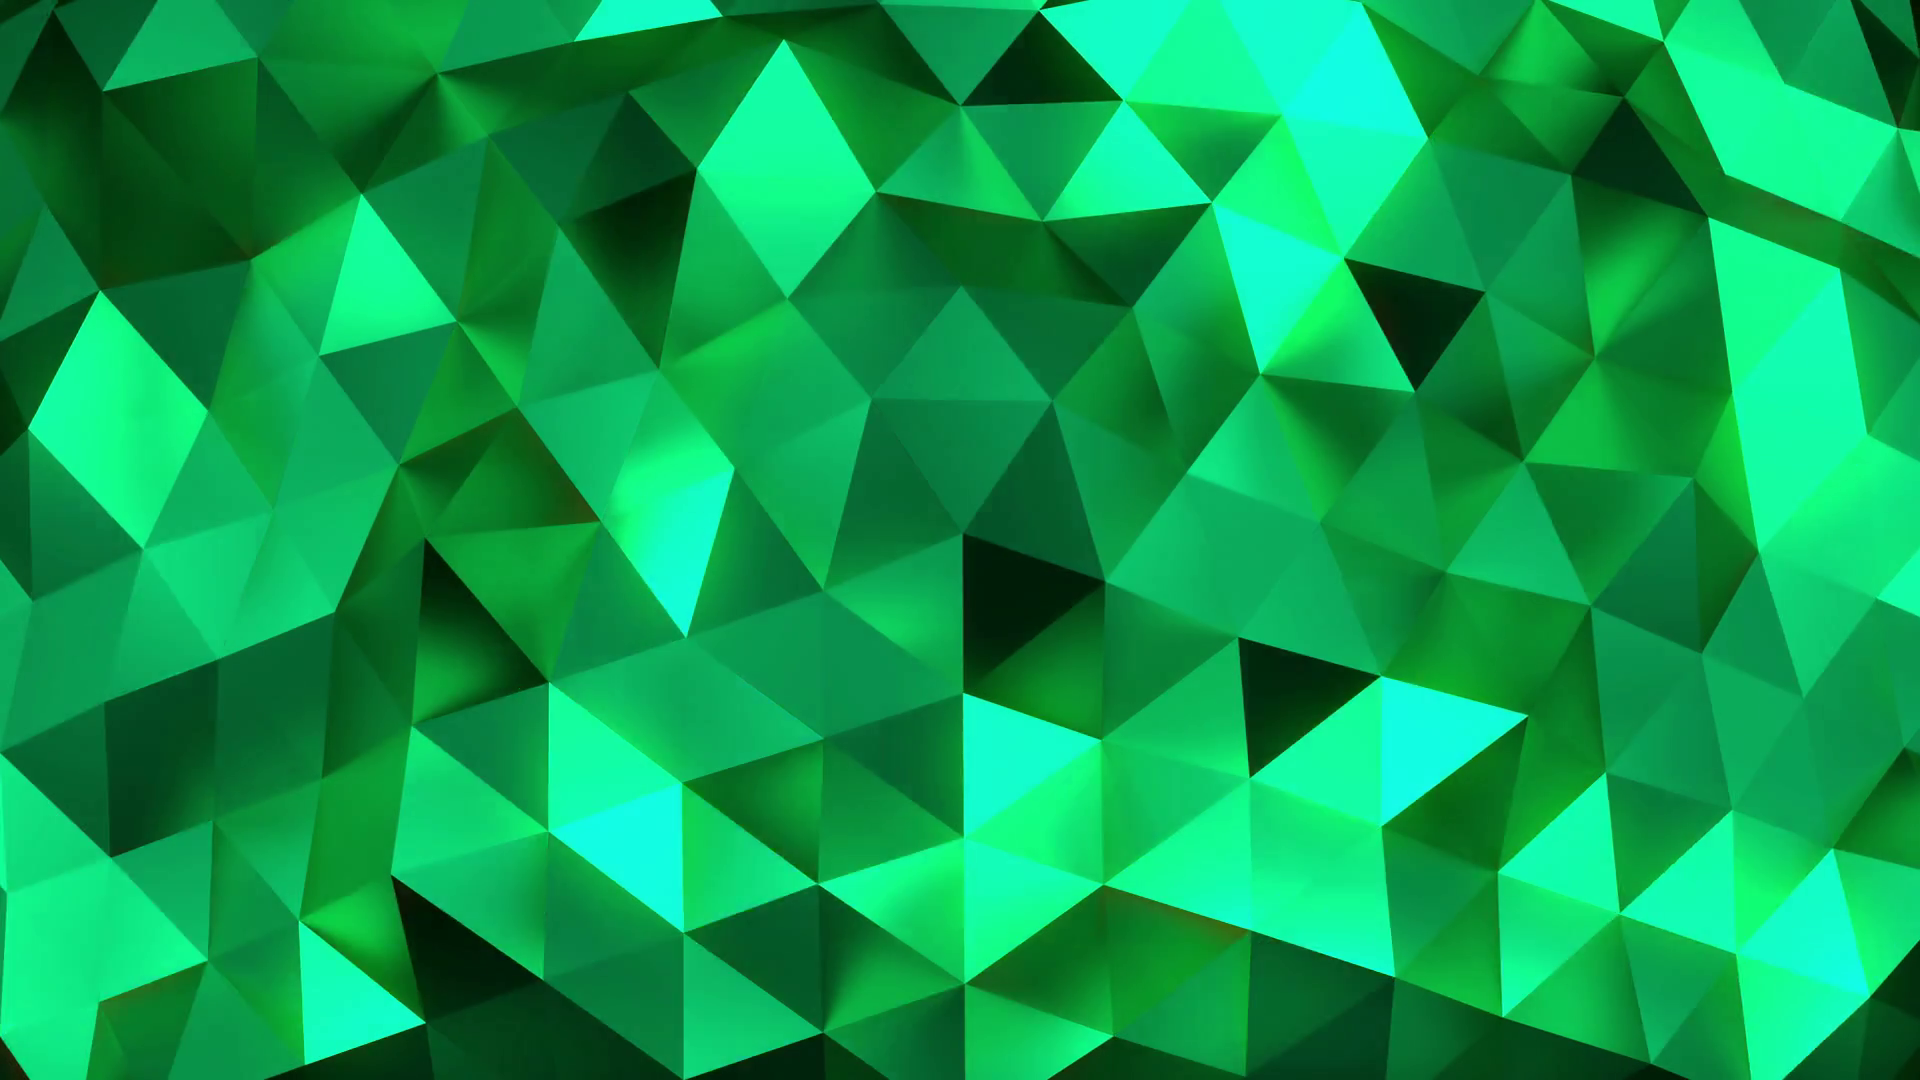 Emerald abstract background of moving shinning triangles low poly 1920x1080